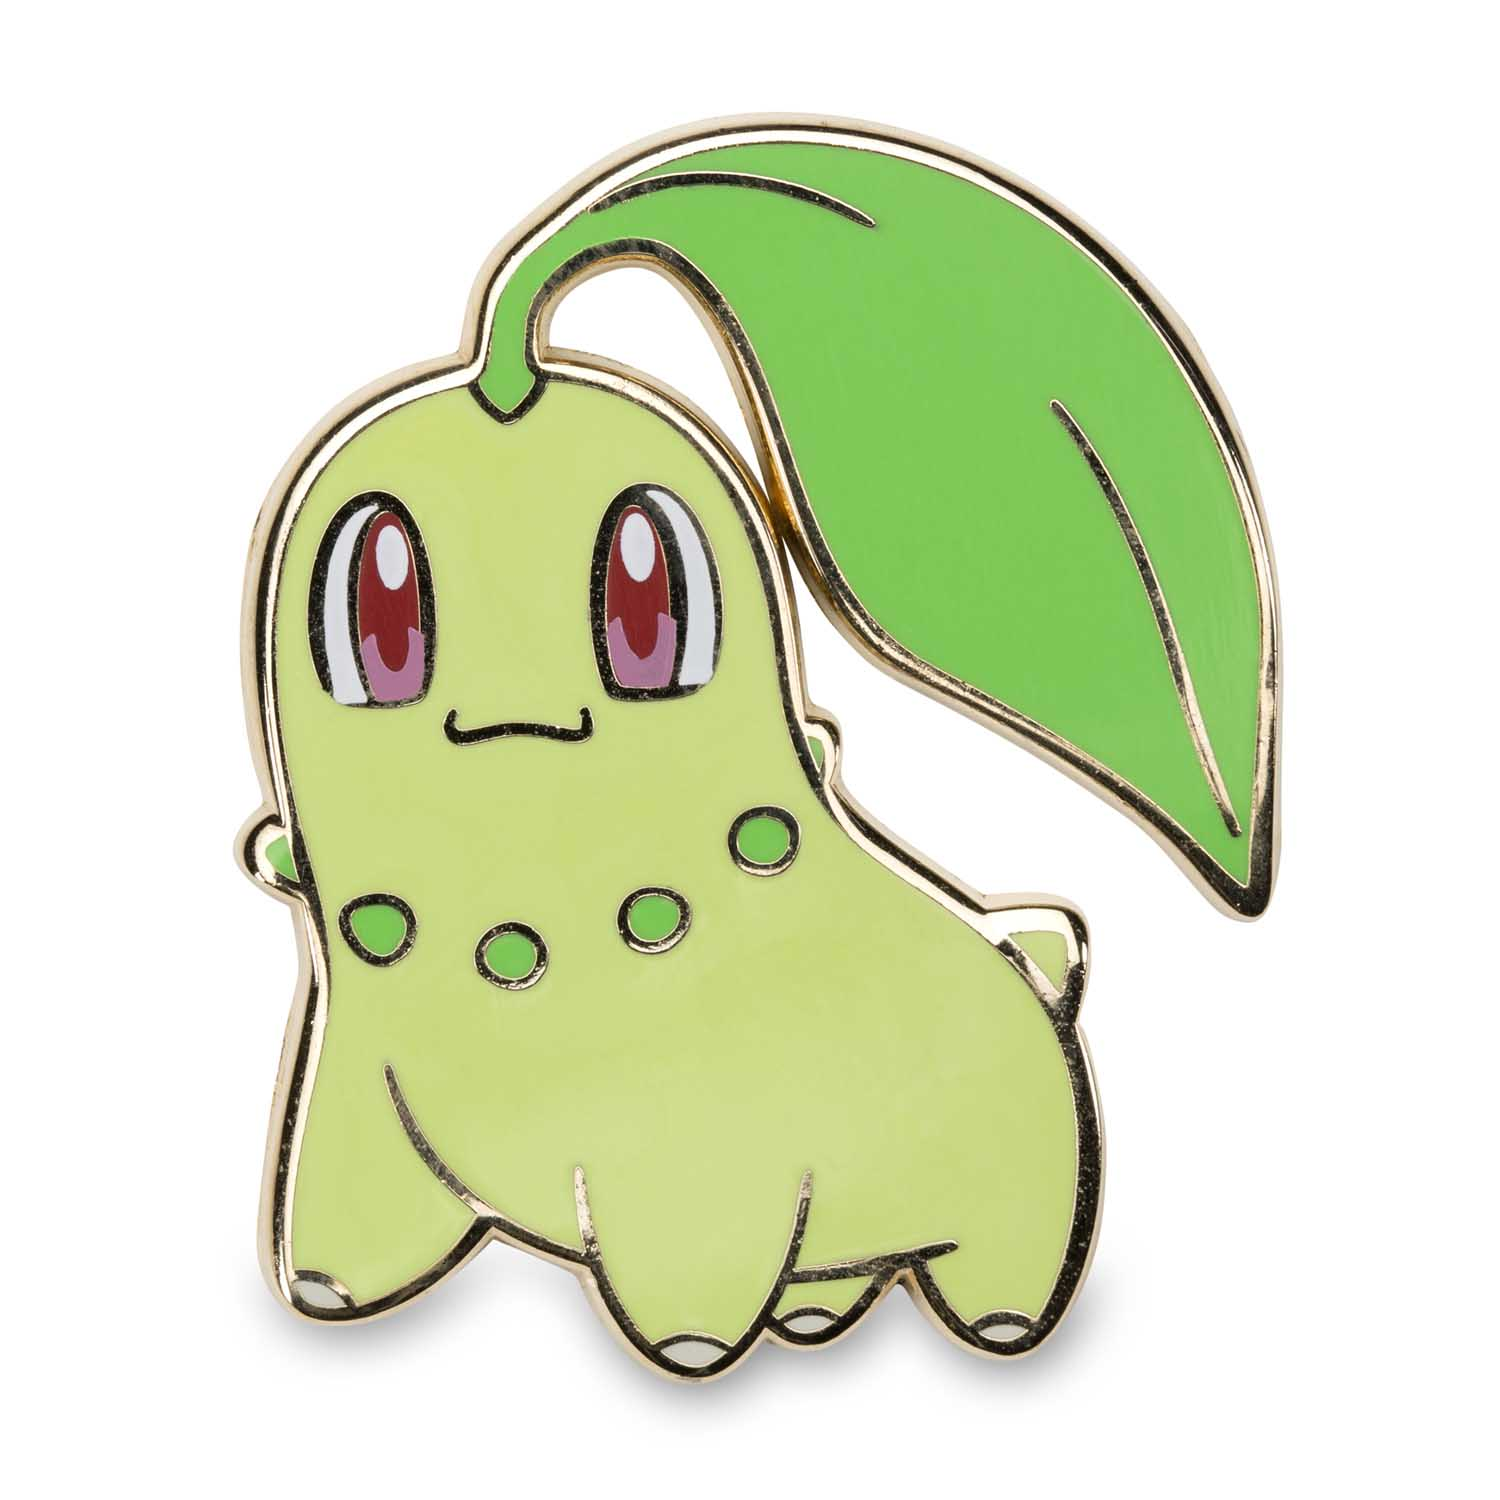 d6f21bf0 ... Image for Pikachu Chikorita Cyndaquil Totodile Pokémon Pins from  Pokemon Center ...